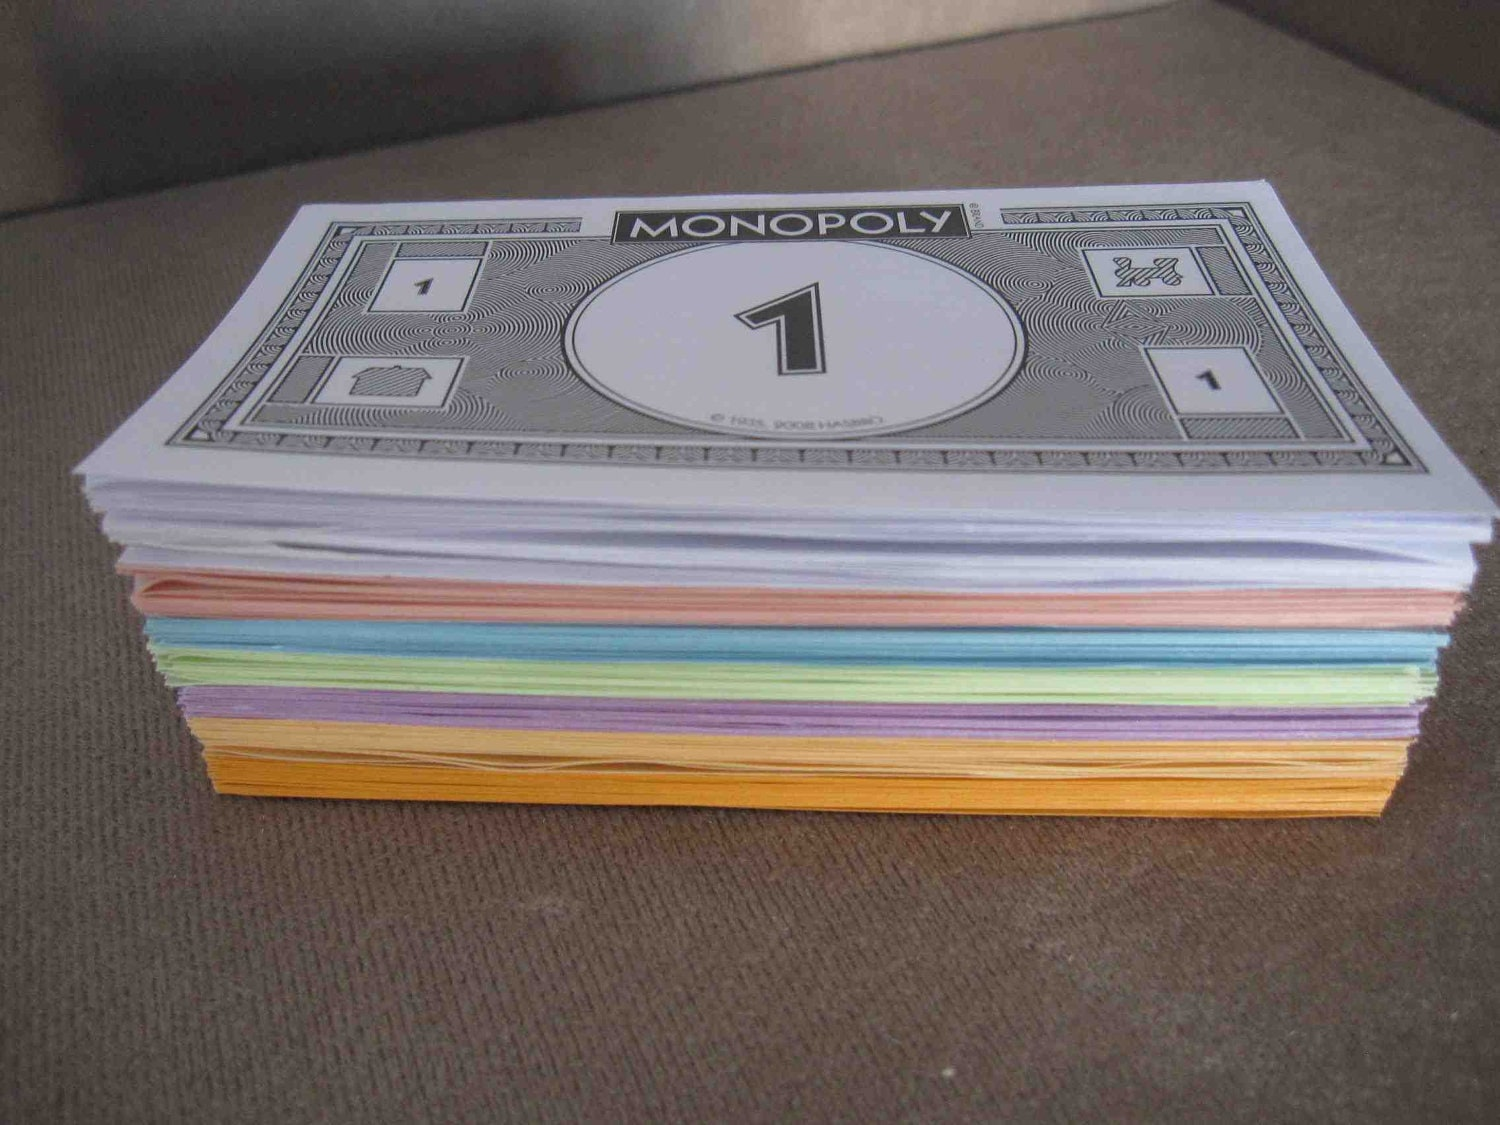 how to read monopoly title deeds